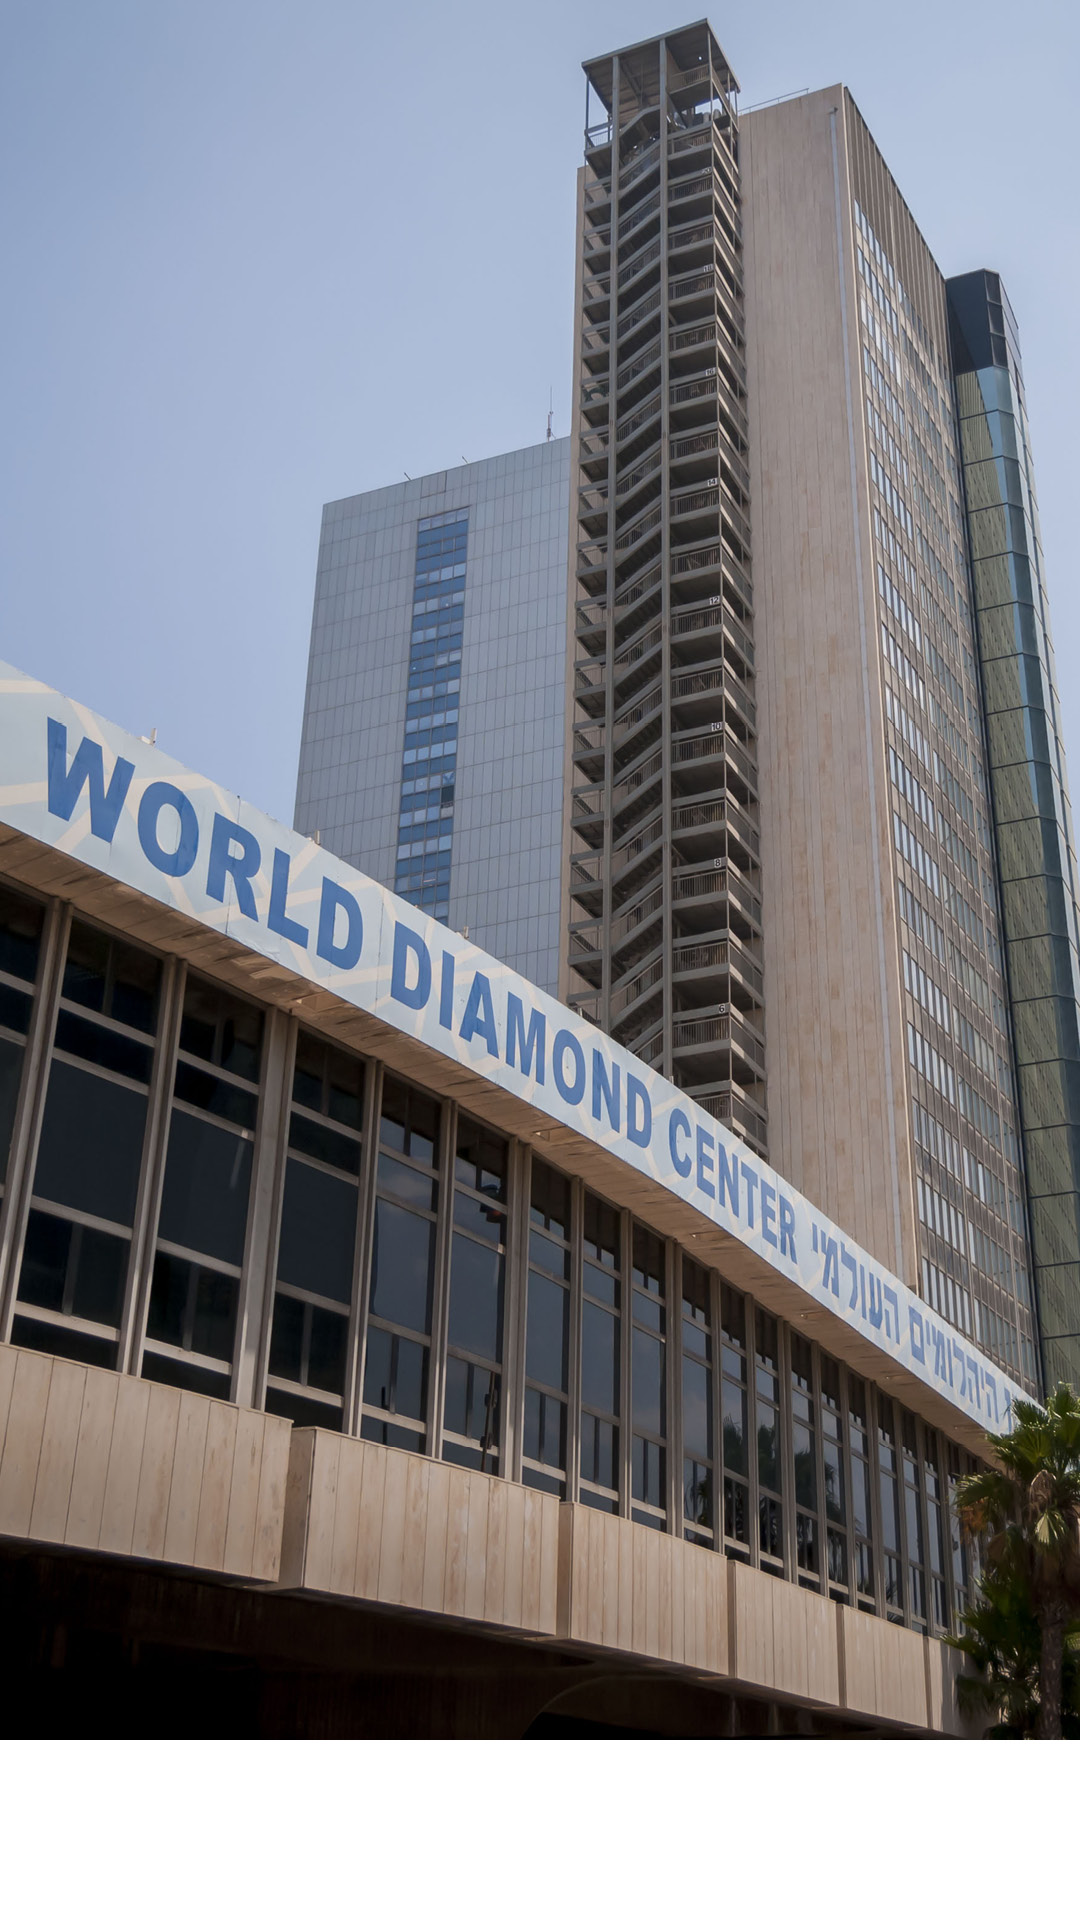 The Israel Diamond Exchange in Ramat Gan